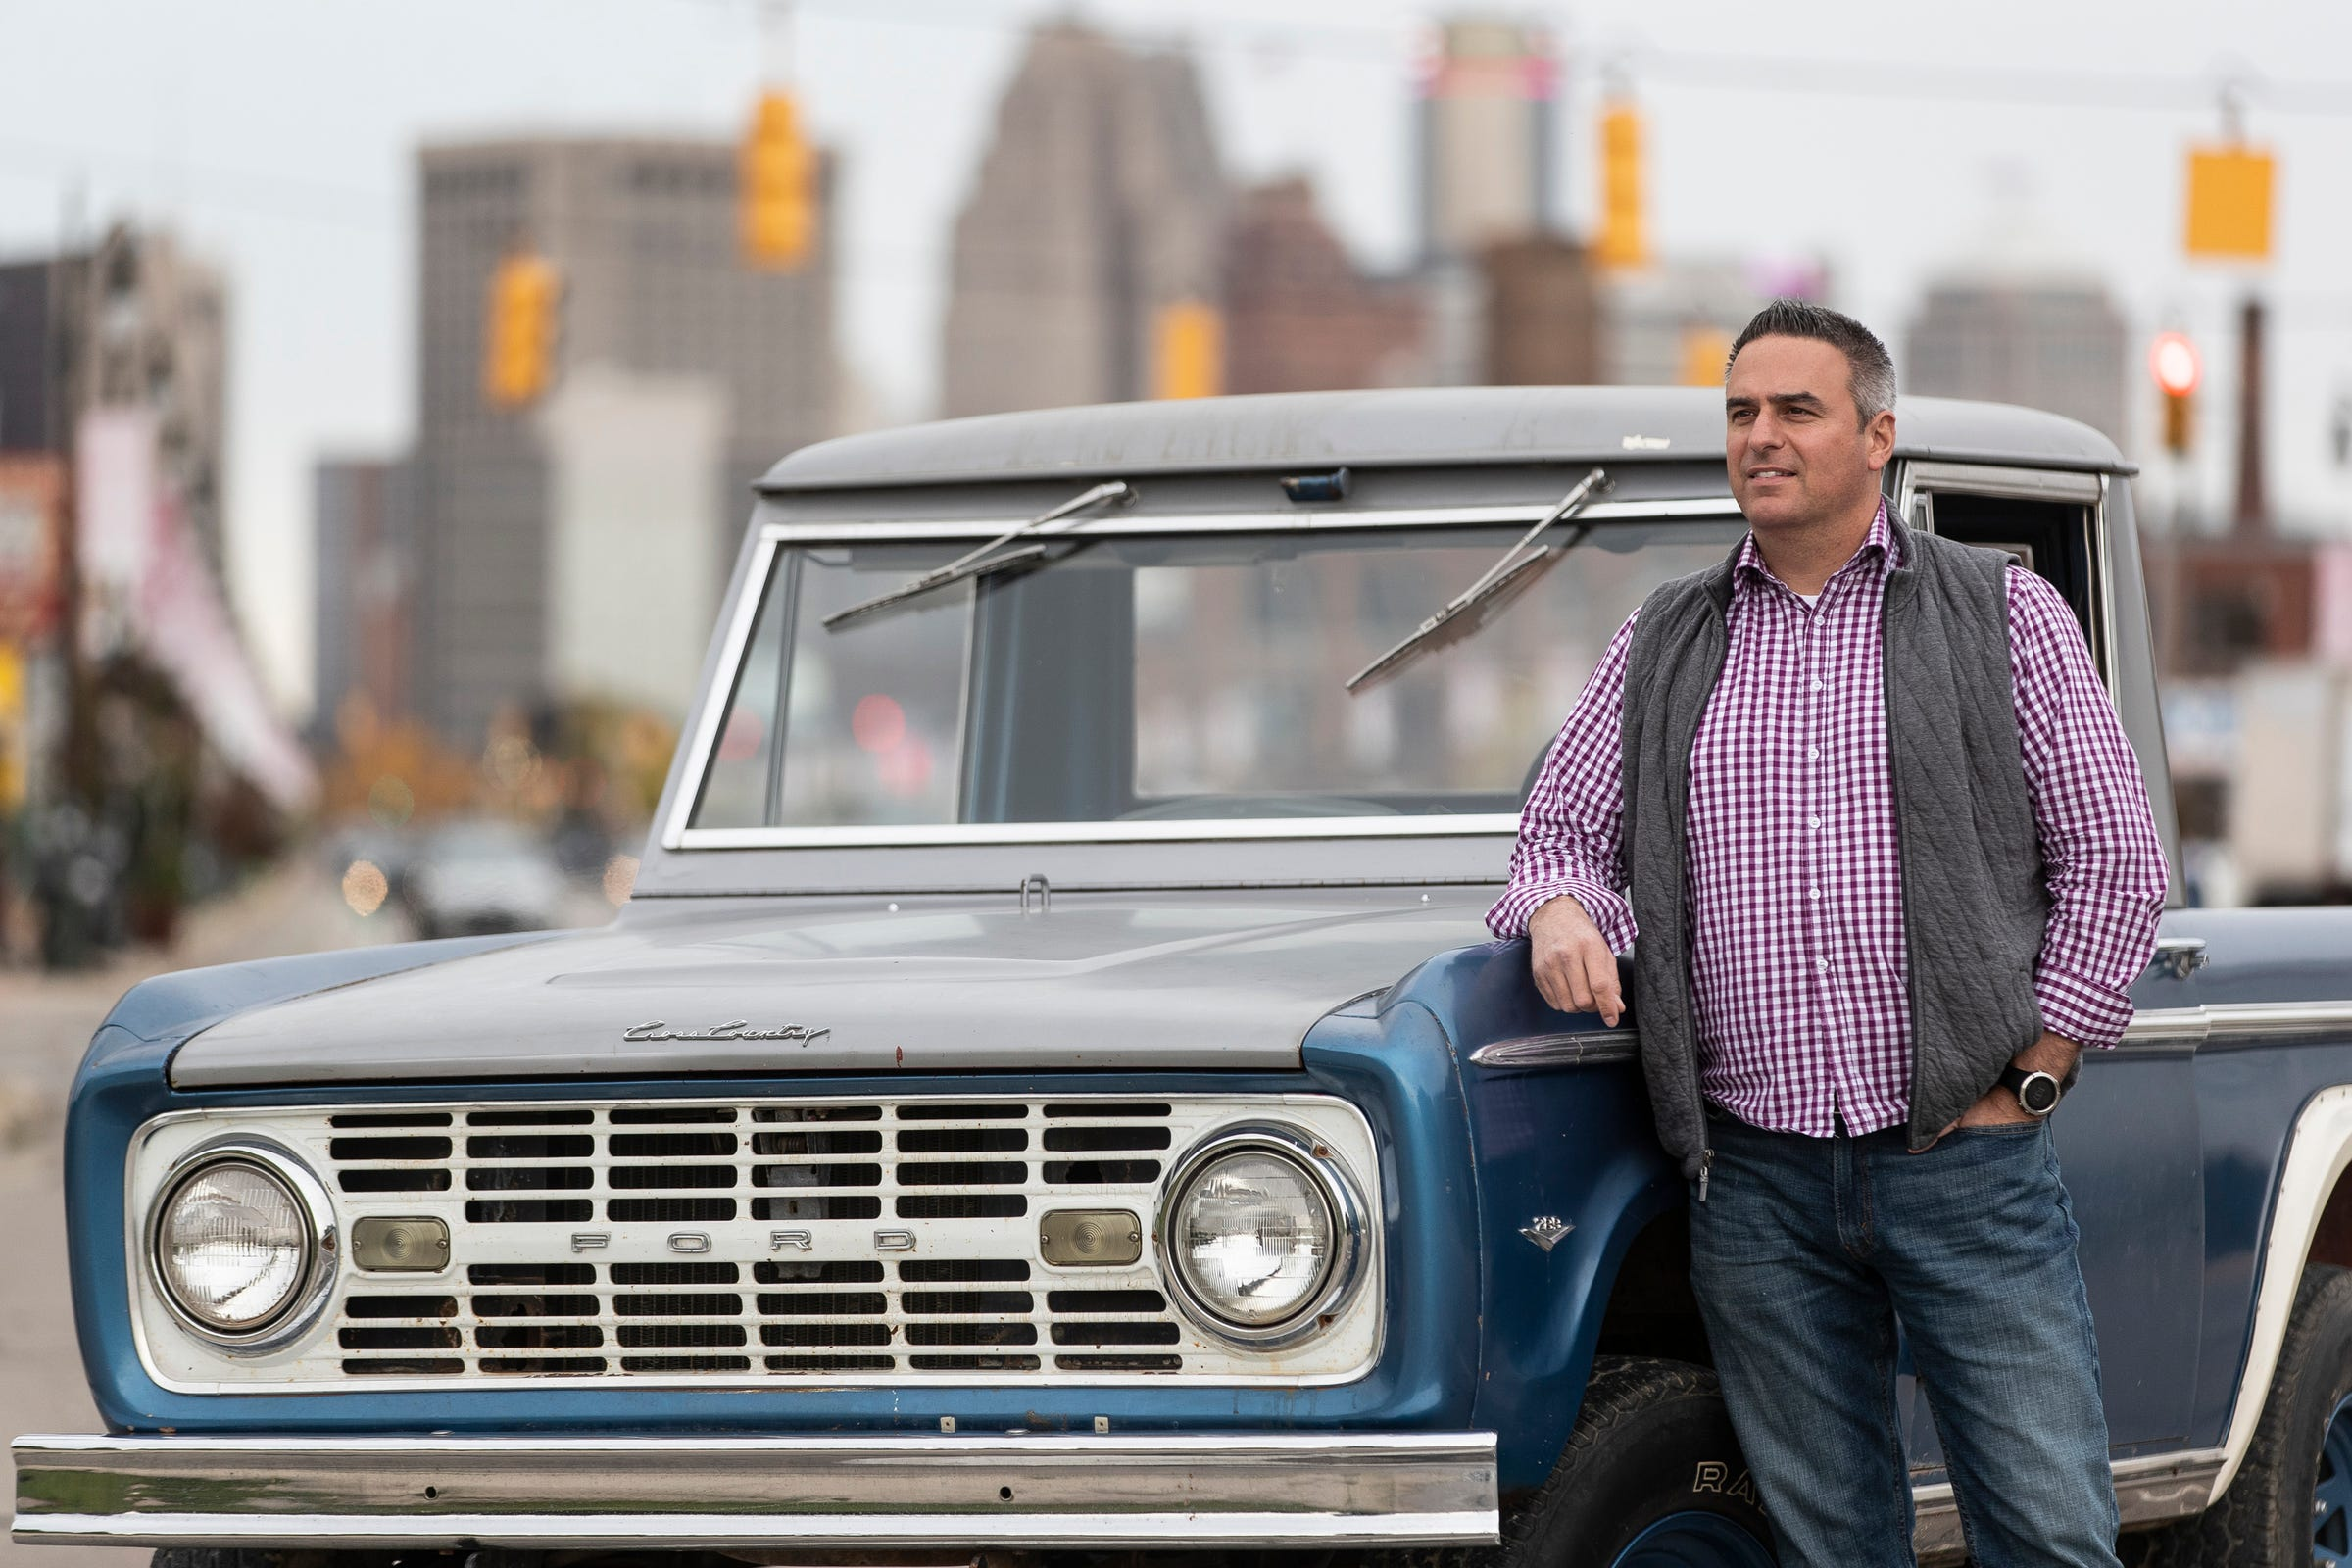 Seth Burgett, CEO of Gateway Bronco in Hamel, Illinois, with his 1966 Ford Bronco that carries VIN number 000. It was the first Ford Bronco ever to roll off the production line. He bought it in 2016.